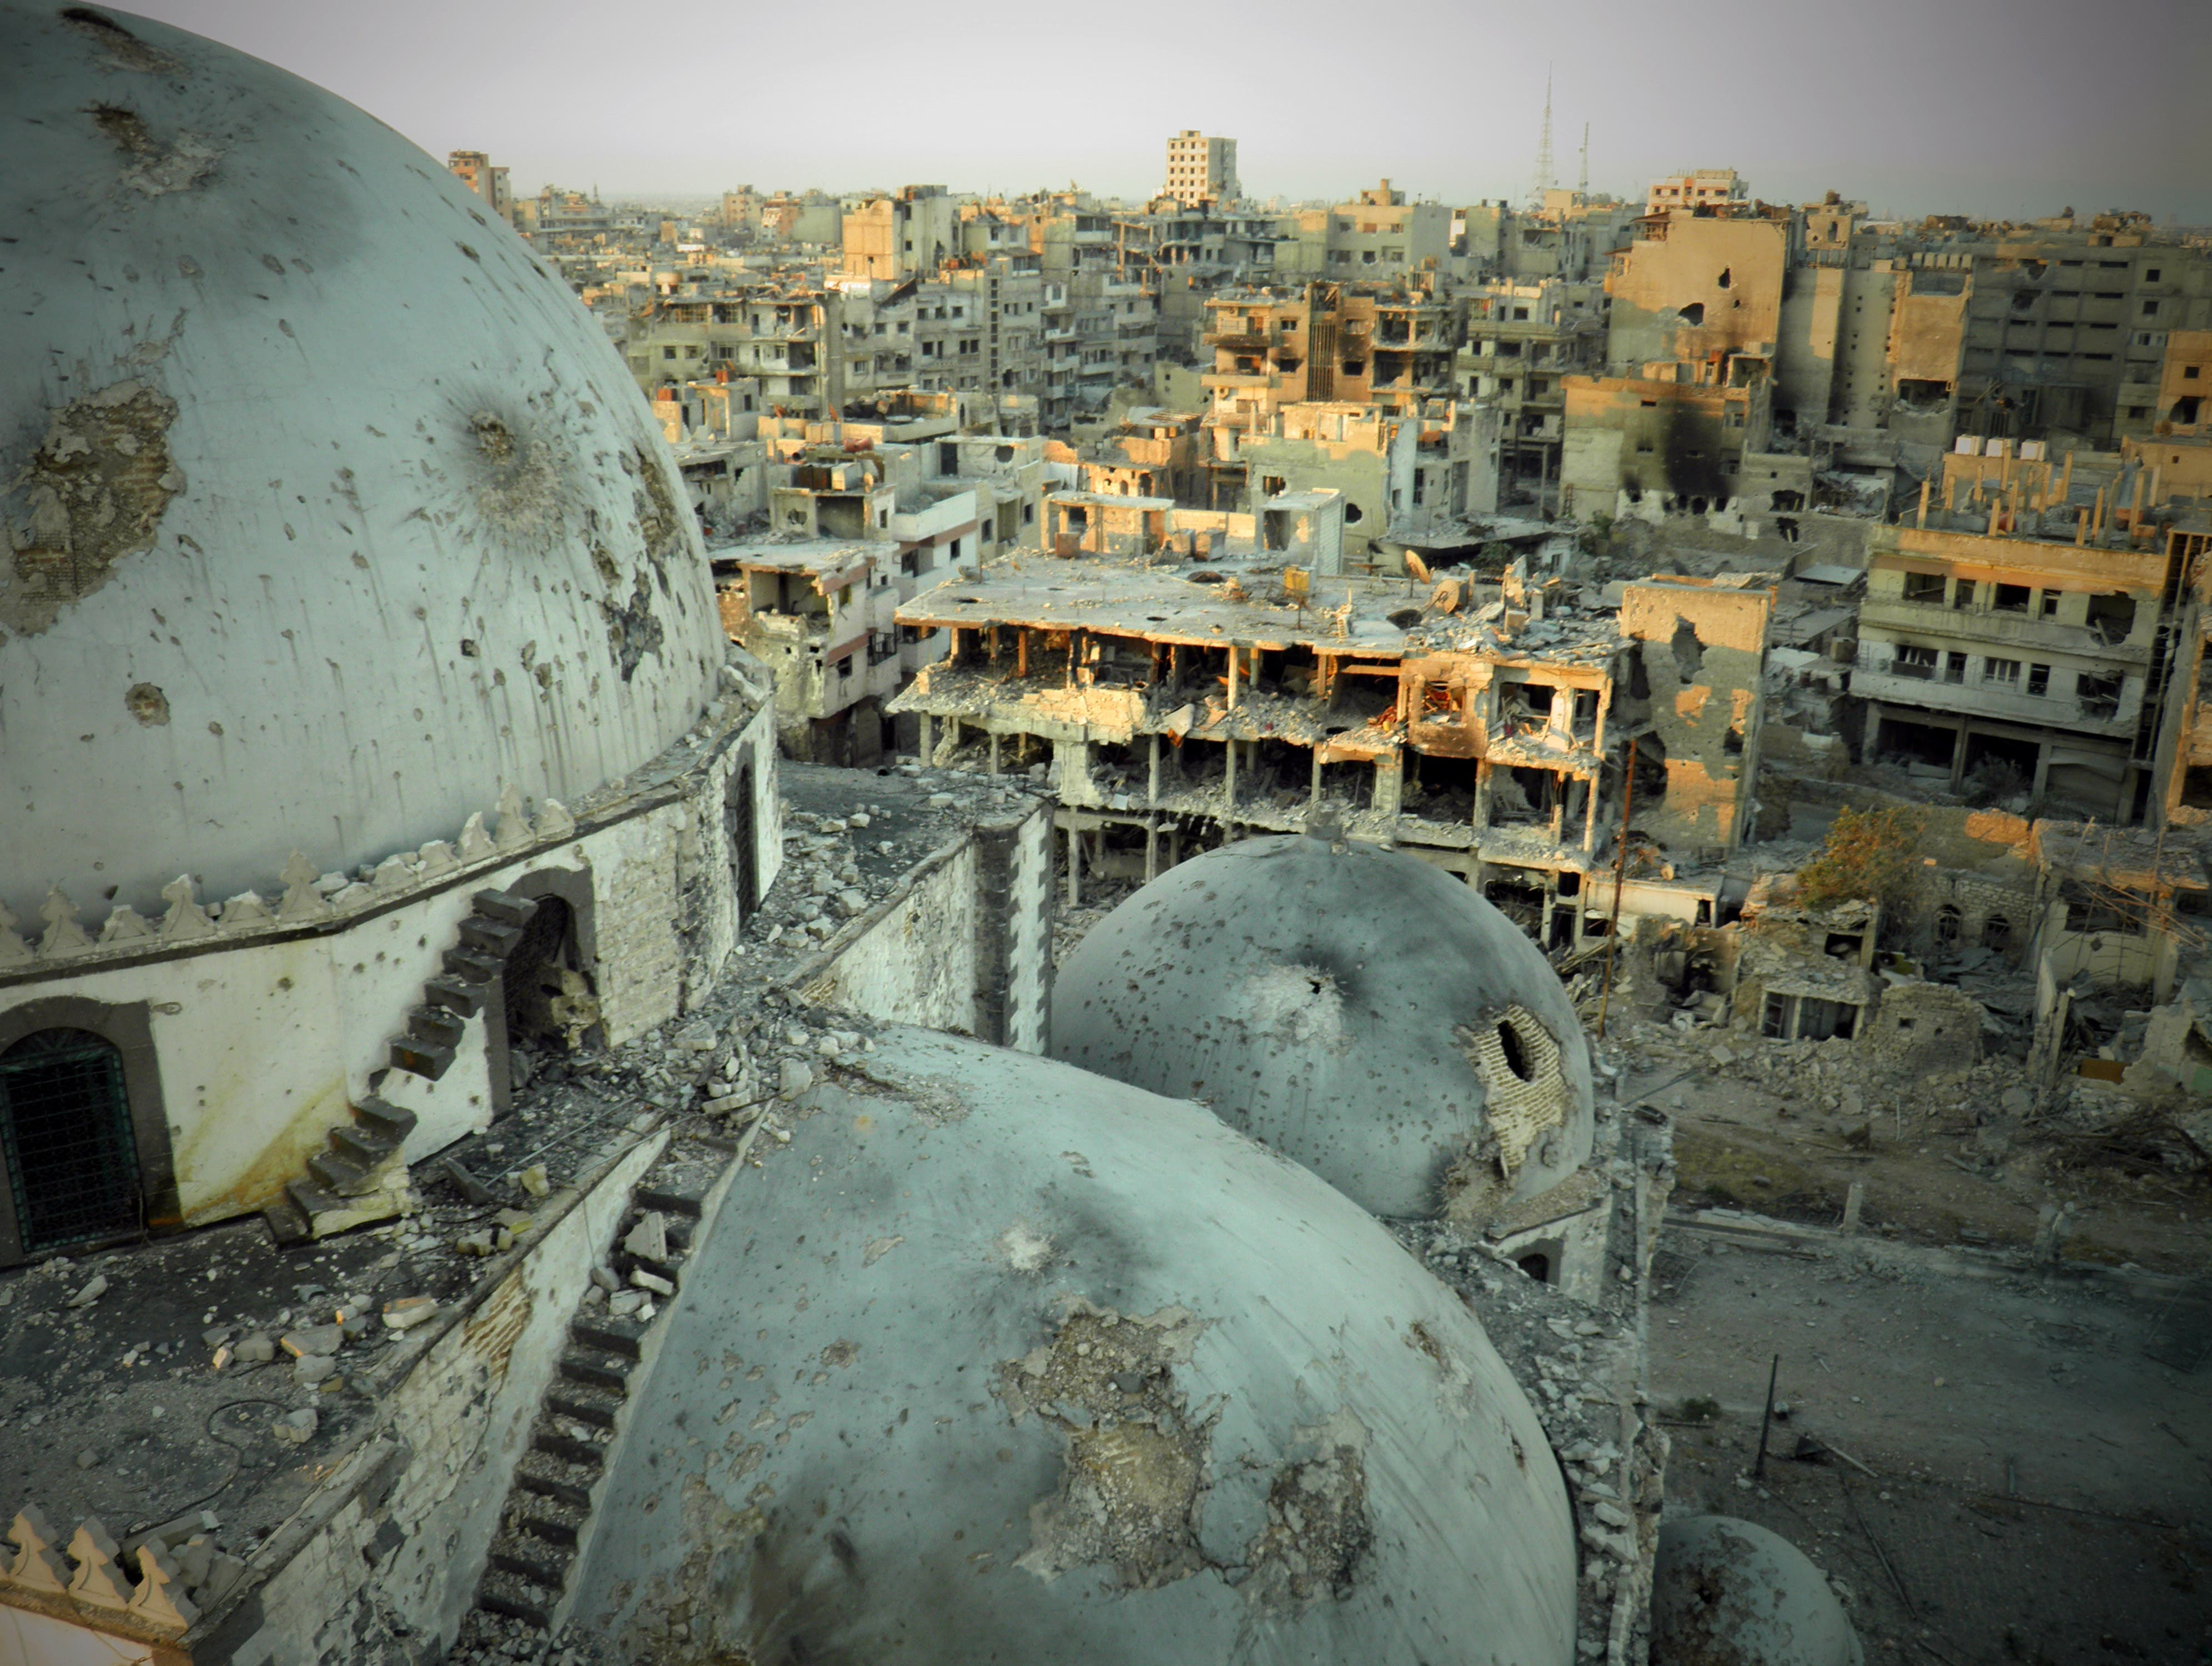 A handout image allegedly shows the Khaled bin Walid mosque, whose mausoleum has been partially destroyed in the al-Khalidiyah neighborhood of the central Syrian city of Homs. (AFP/HO/SHAAM NEWS NETWORK)